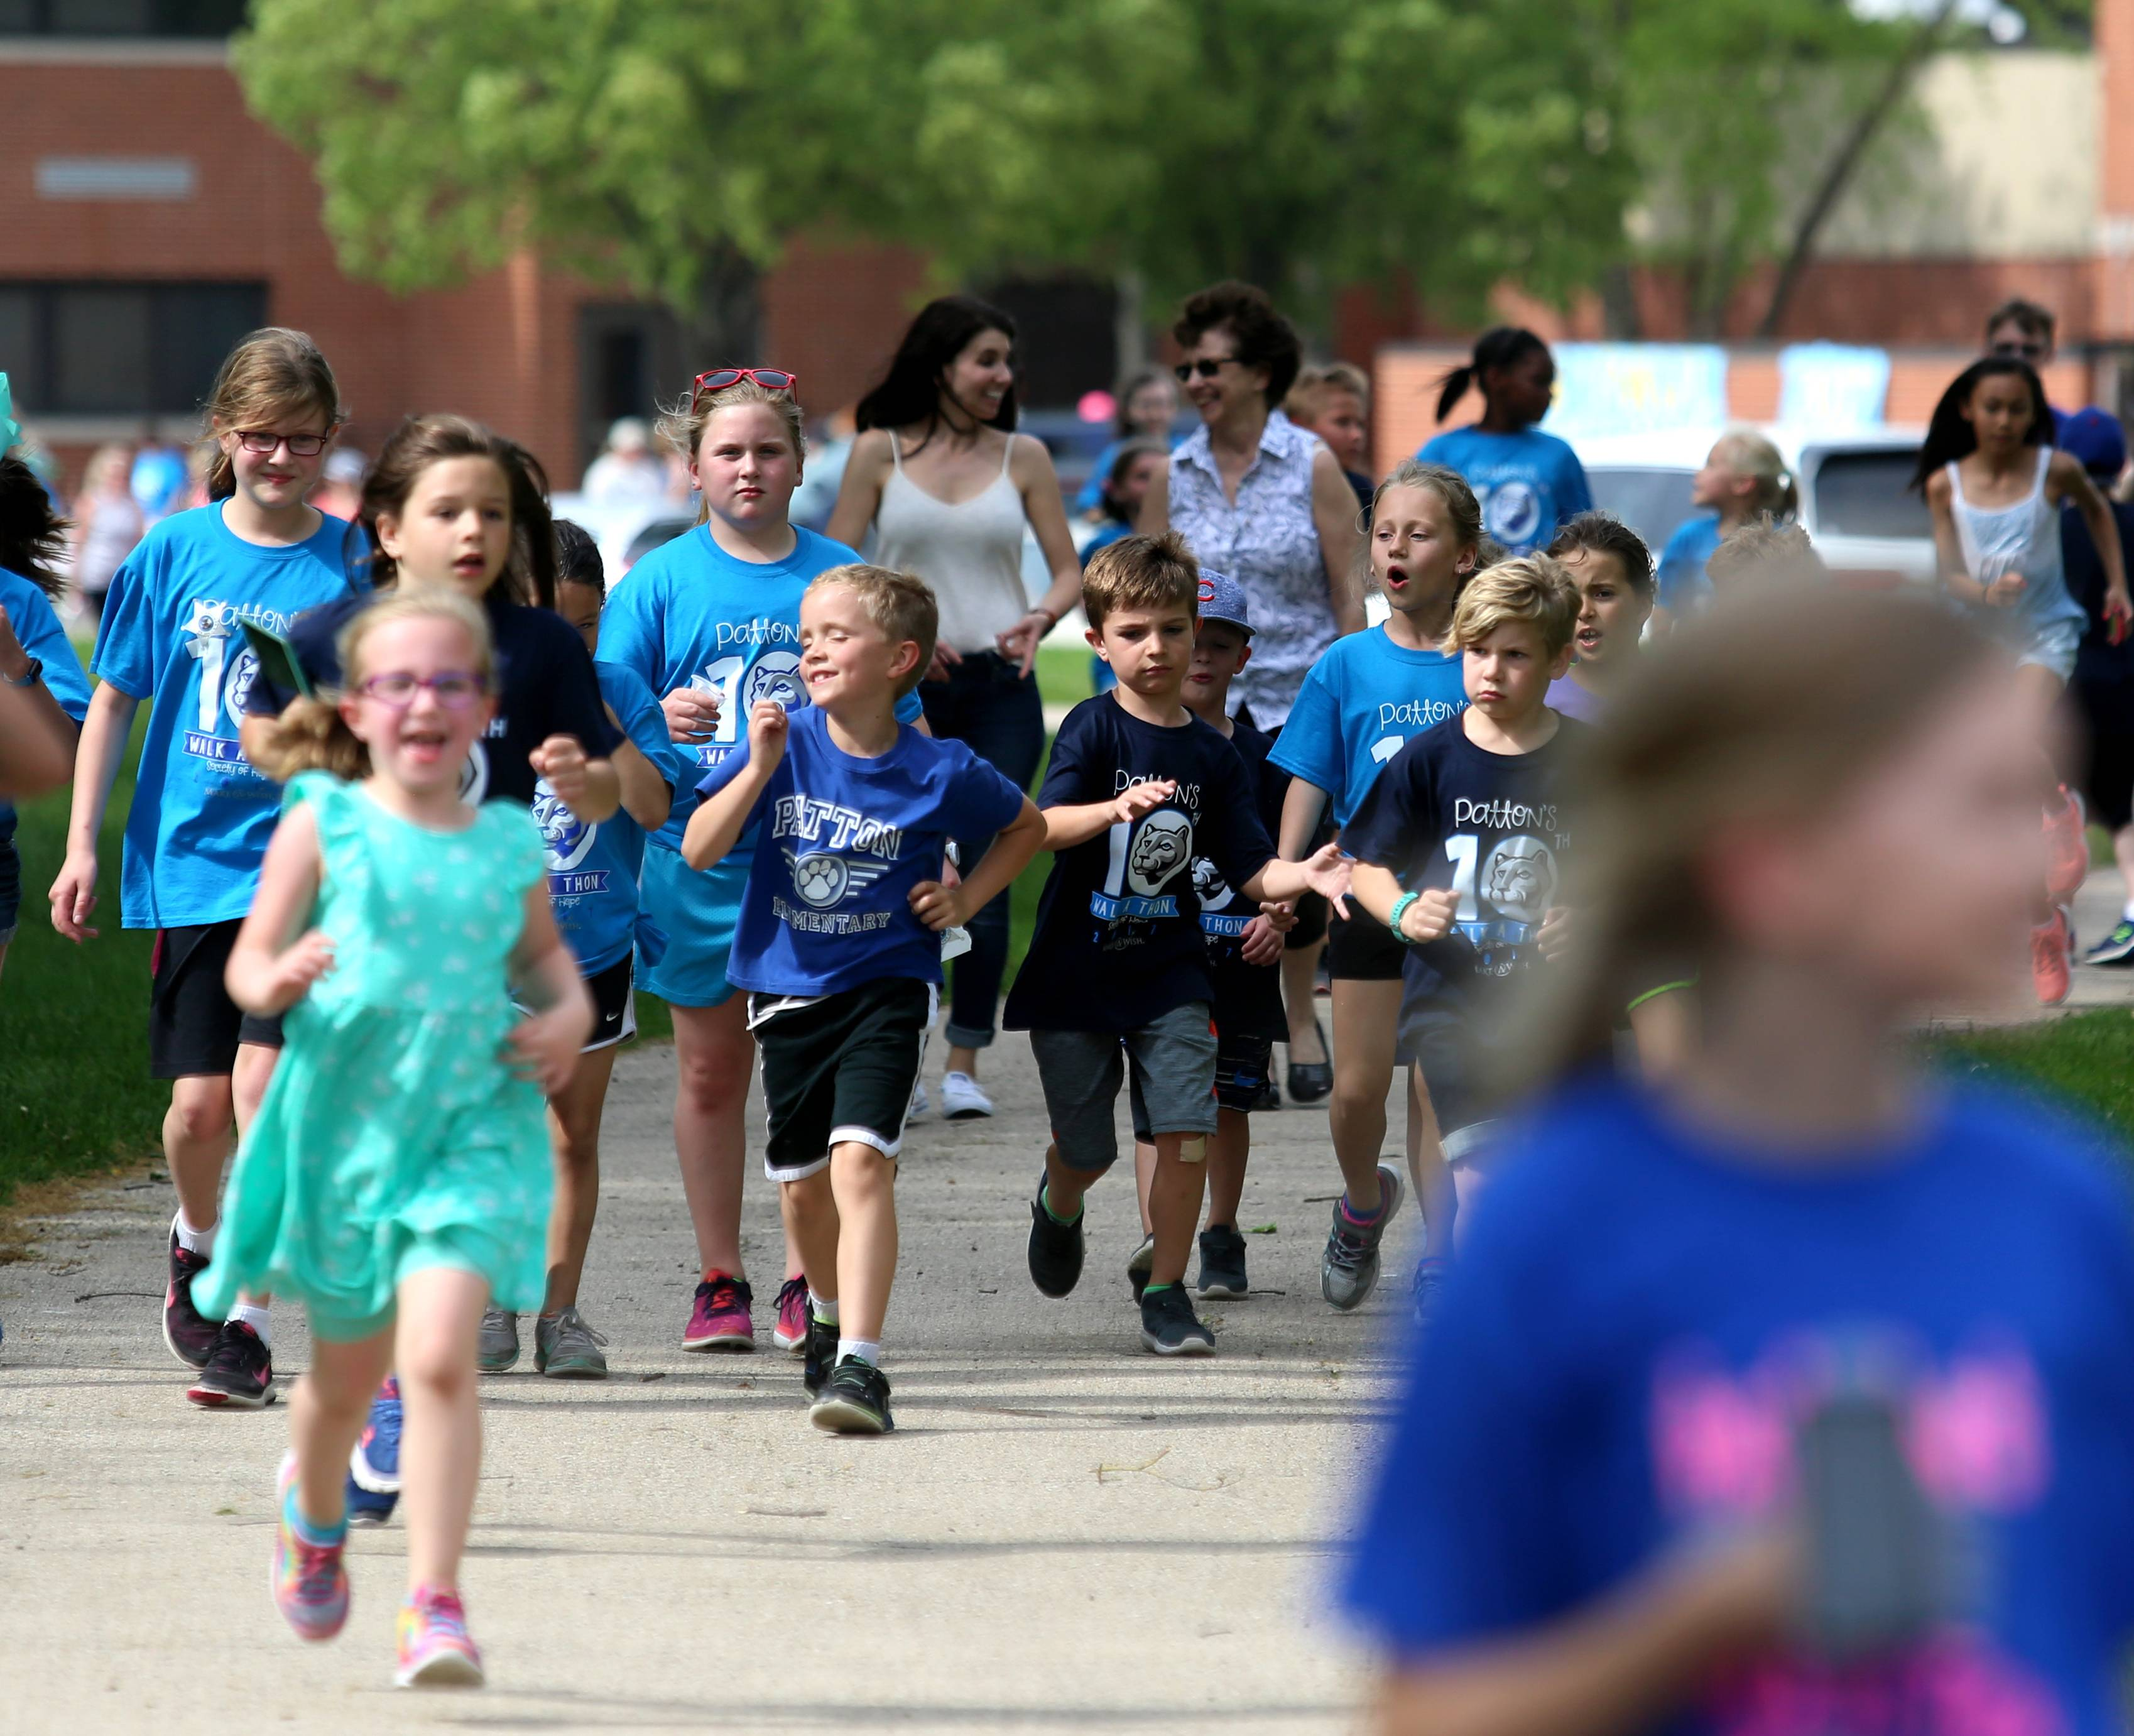 Students at Patton Elementary School in Arlington Heights take part in the school's 10th annual Make-A-Wish Foundation Walk-A-Thon Wednesday. The school has been inducted into the organization's Society of Hope for raising more than $100,000 over the last decade.